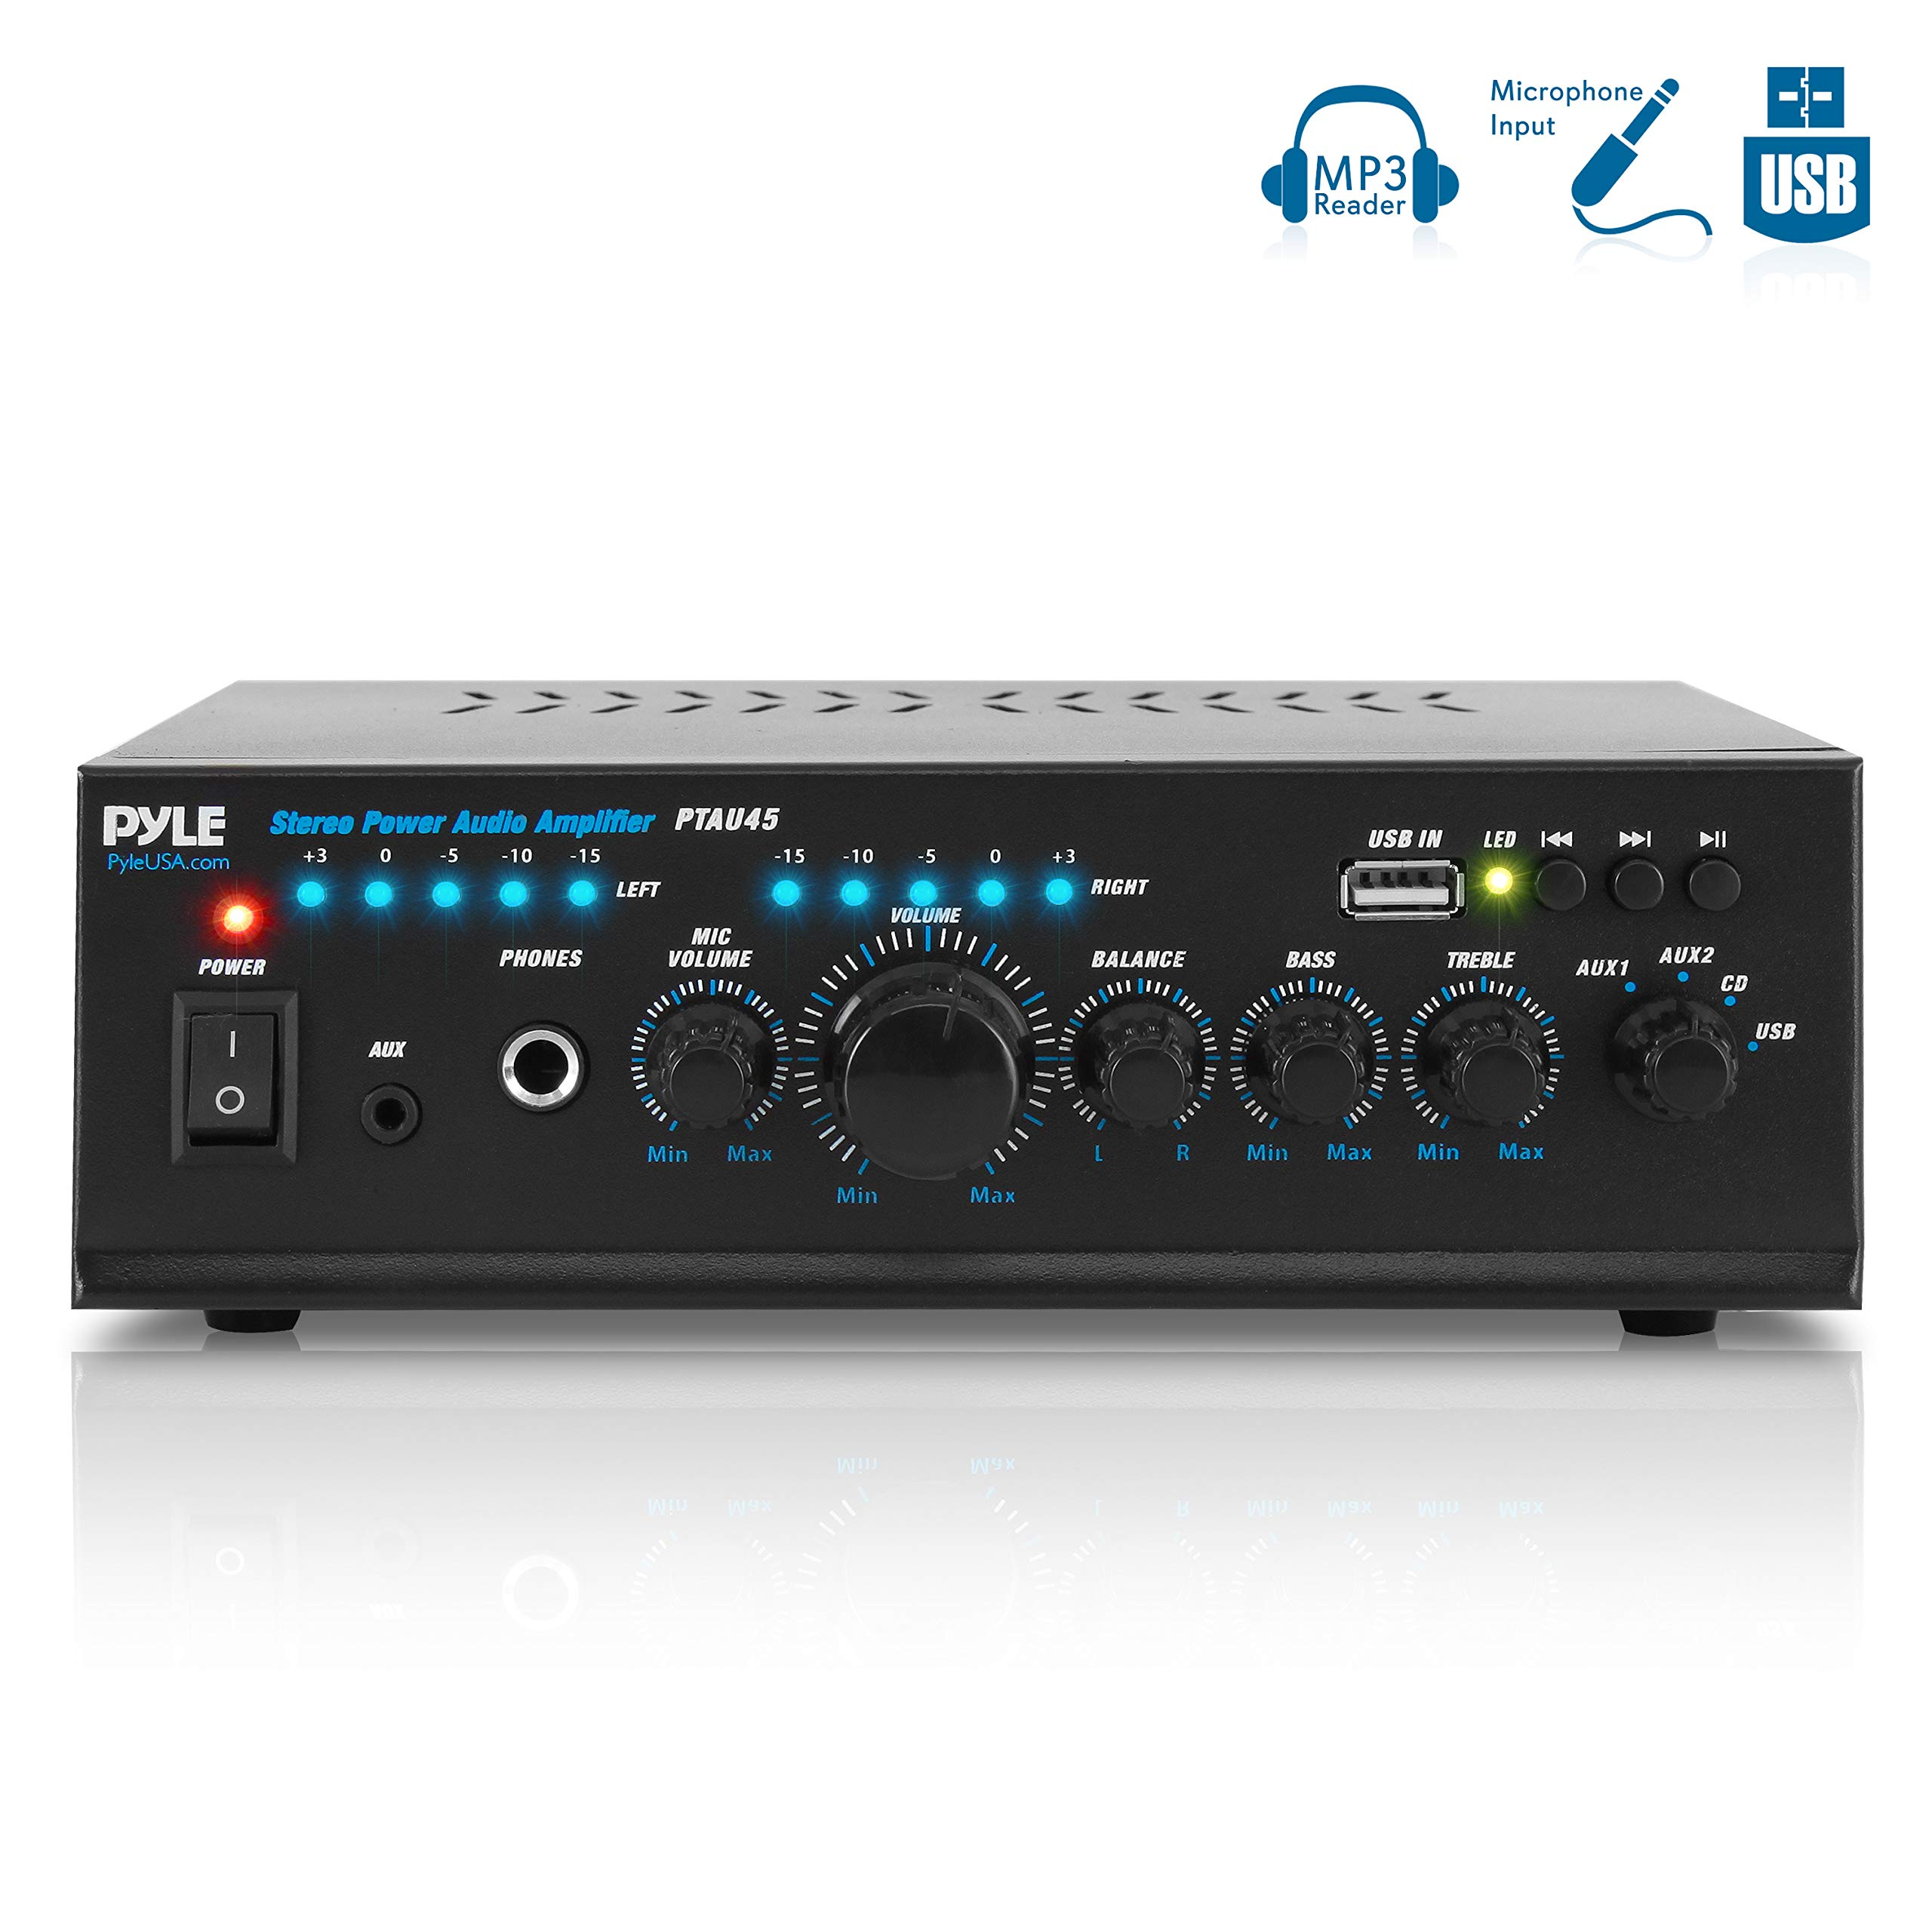 Pyle 2X120 Watt Home Audio Power Amplifier - Portable 2 Channel Surround Sound Stereo Receiver w/ USB in - for Amplified Subwoofer Speaker, CD DVD, MP3, iPhone, Phone, Theater, PA System - PTAU45 by Pyle